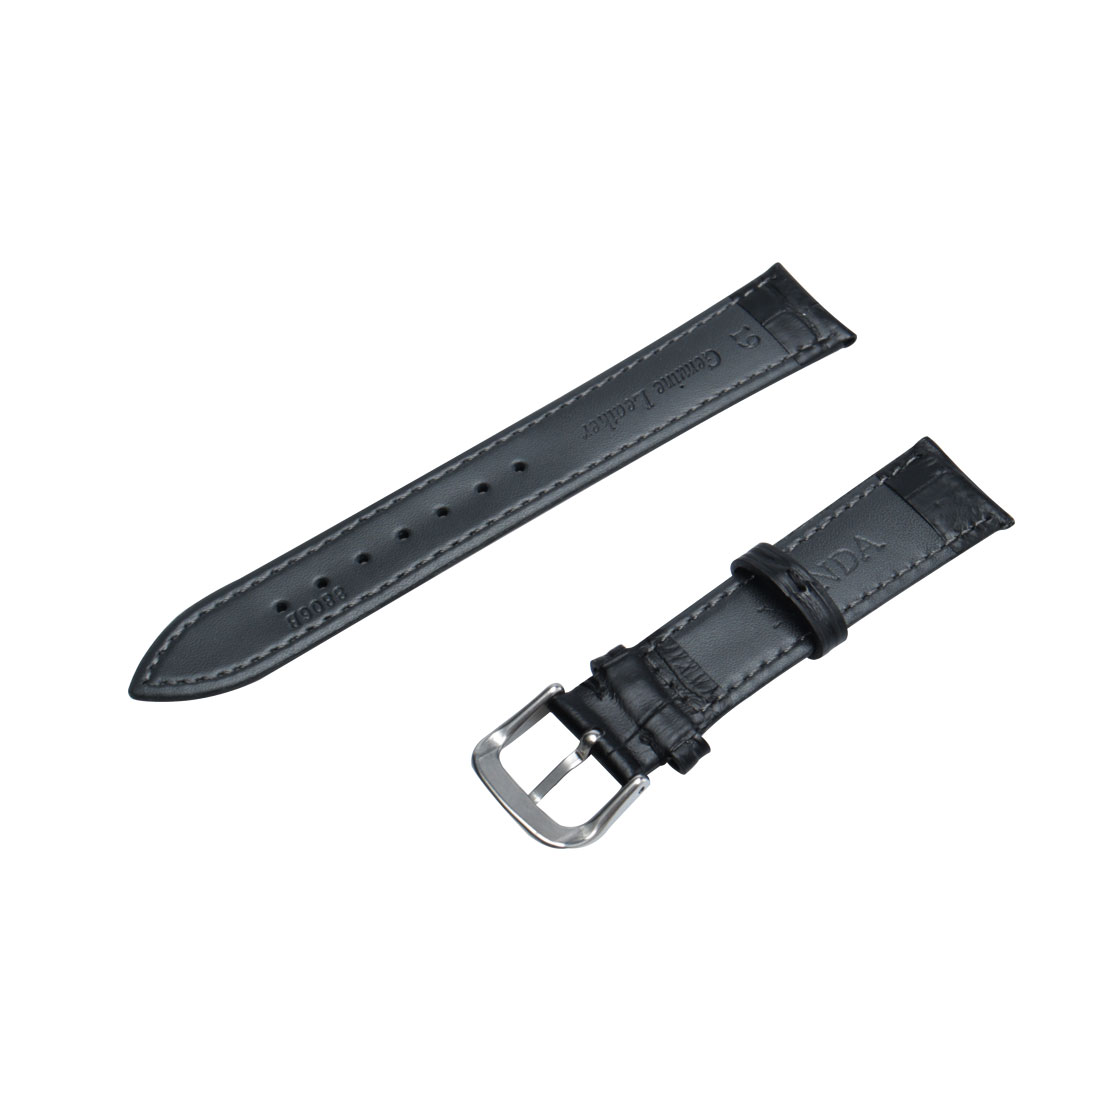 Faux Leather Adjustable Watch Band Belt Bracelet Strap 19mm Width Black